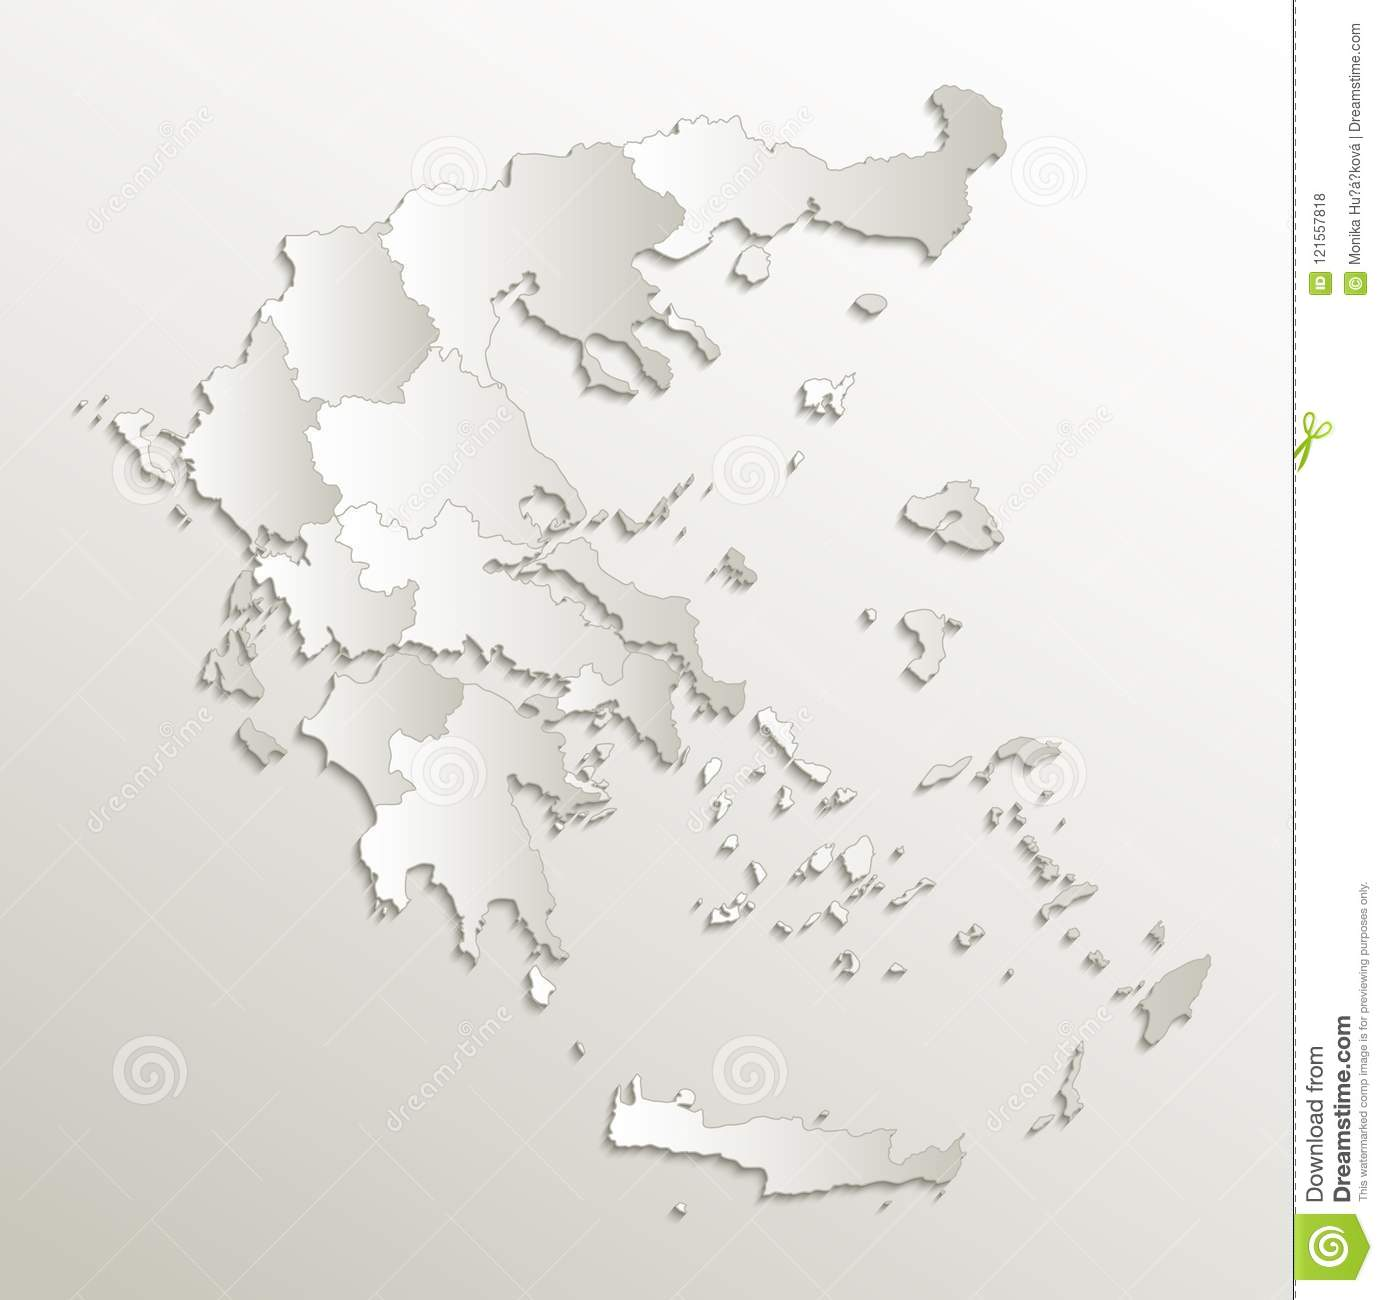 Greece Map Blank.Greece Map Separate Region Individual Blank Card Paper 3d Natural